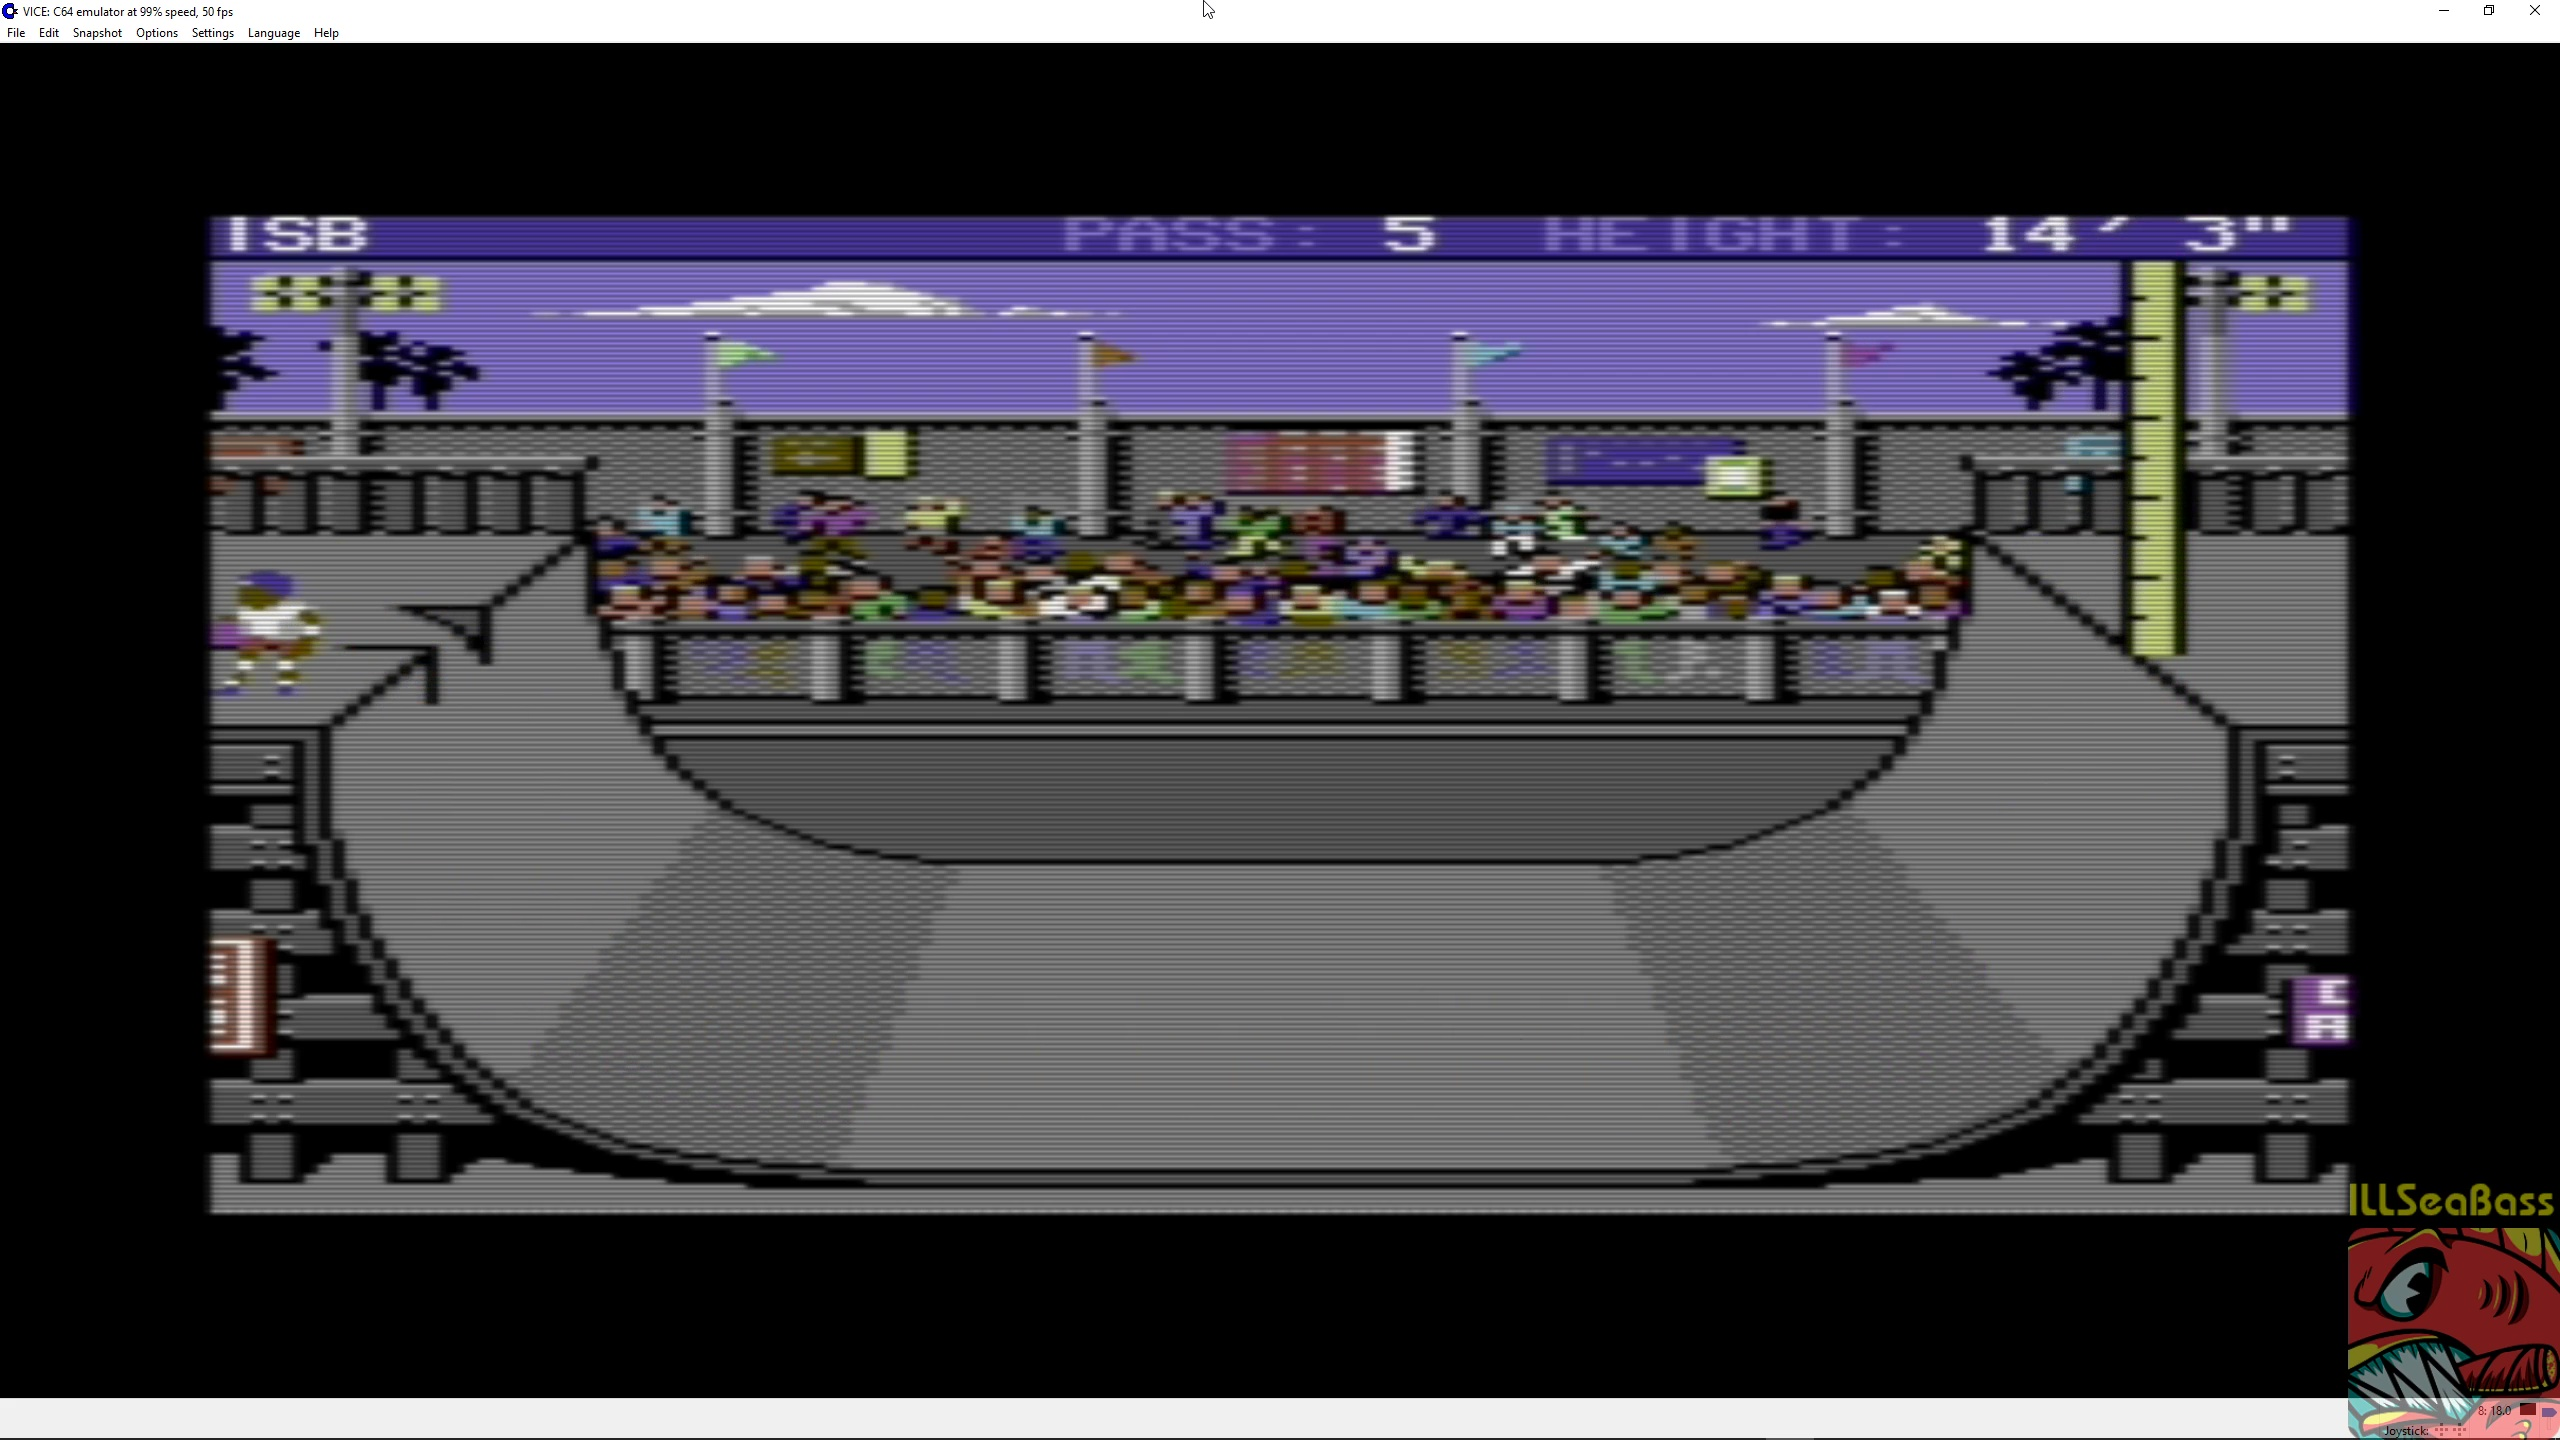 ILLSeaBass: Skate or Die [High Jump] (Commodore 64 Emulated) 171 points on 2018-04-30 23:31:50